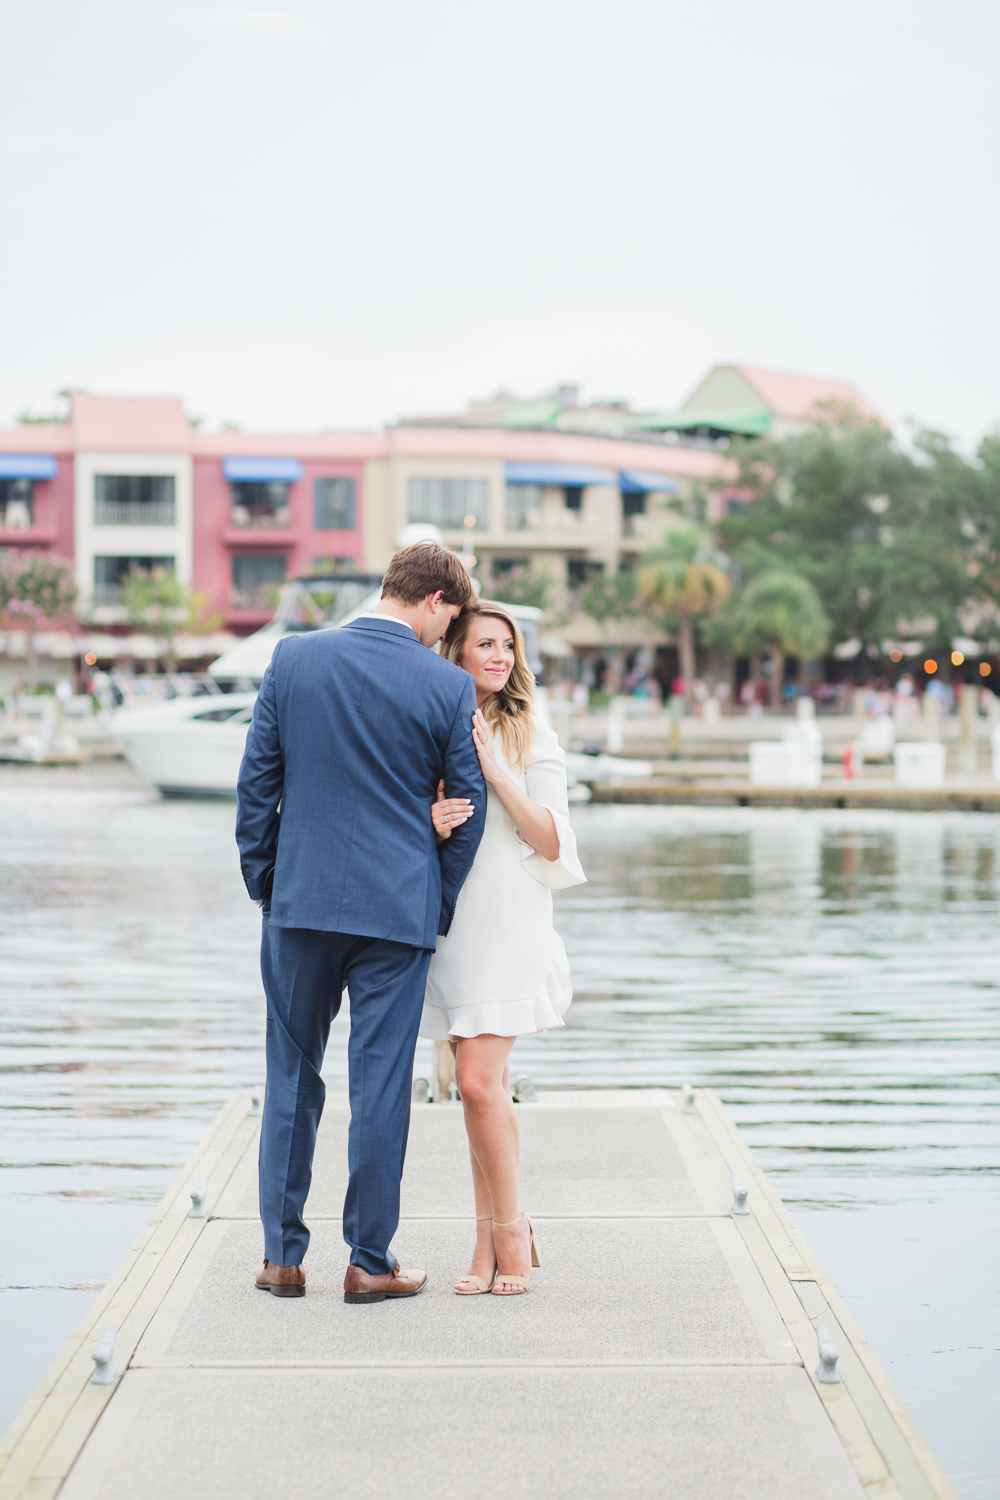 emily baucom charleston wedding photographer (15 of 25)